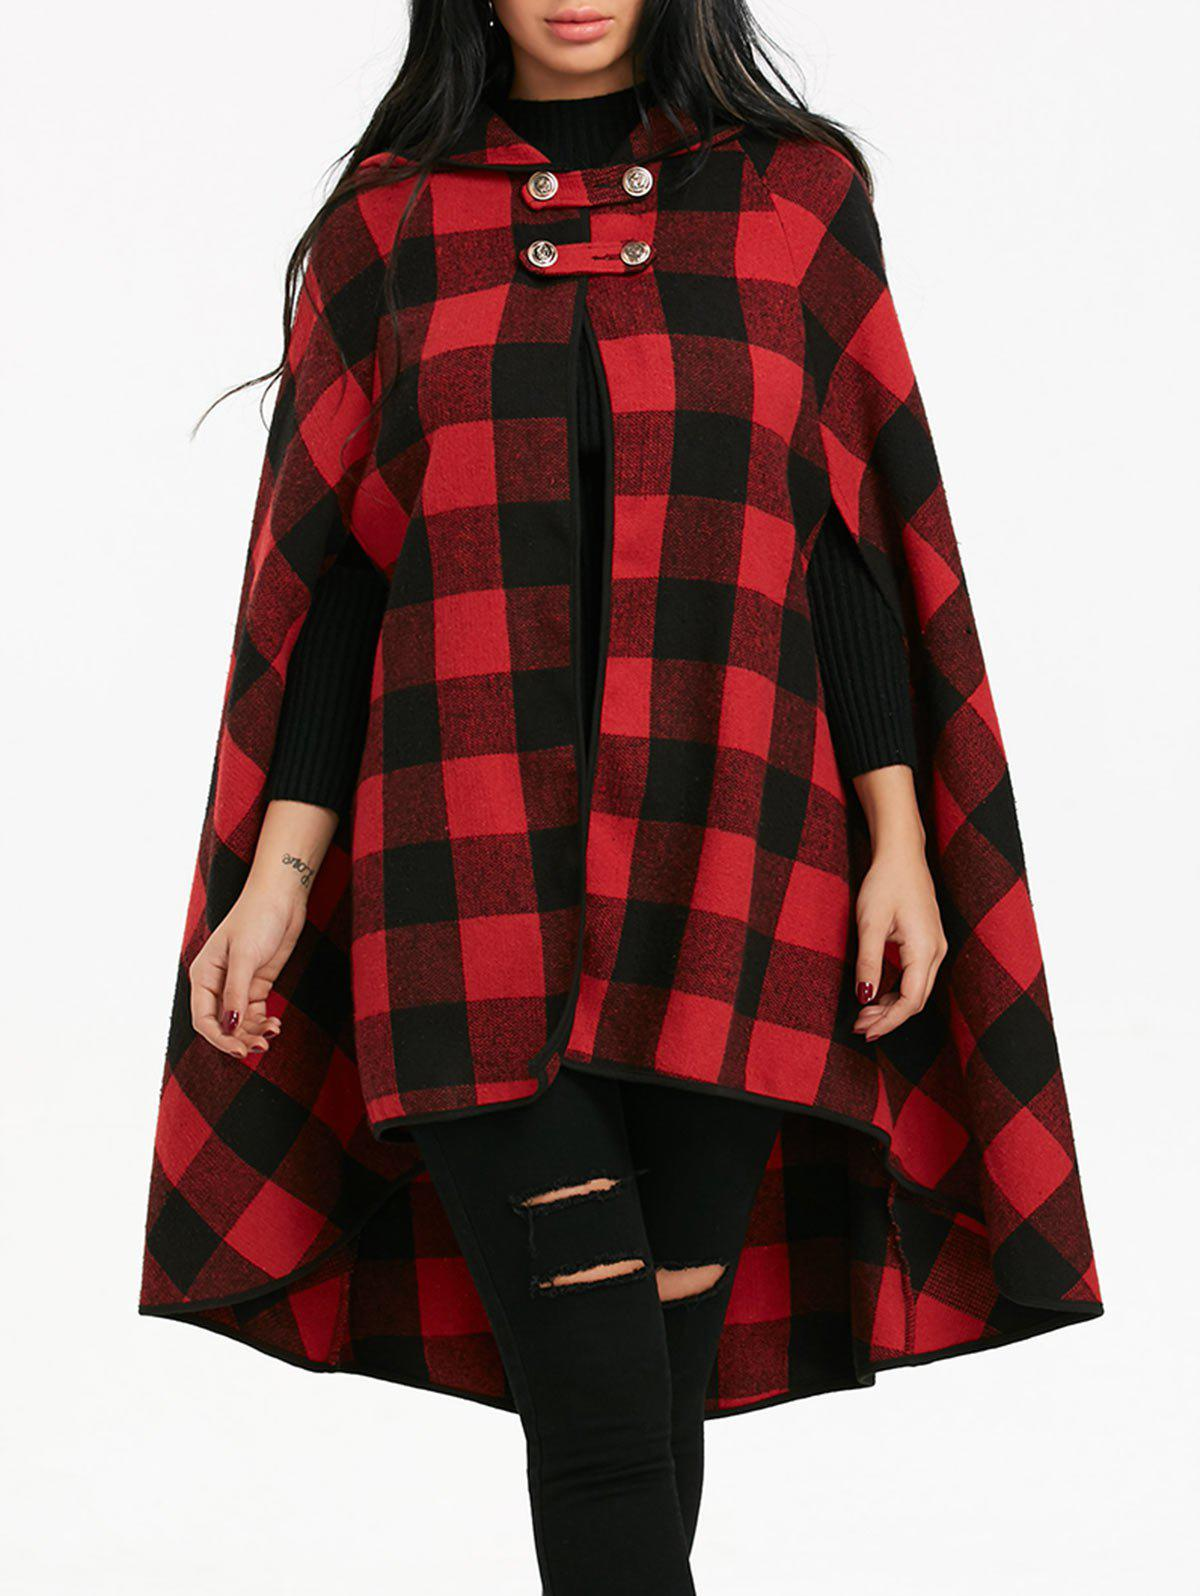 Unique Batwing Sleeve Plaid Hooded Cape Coat